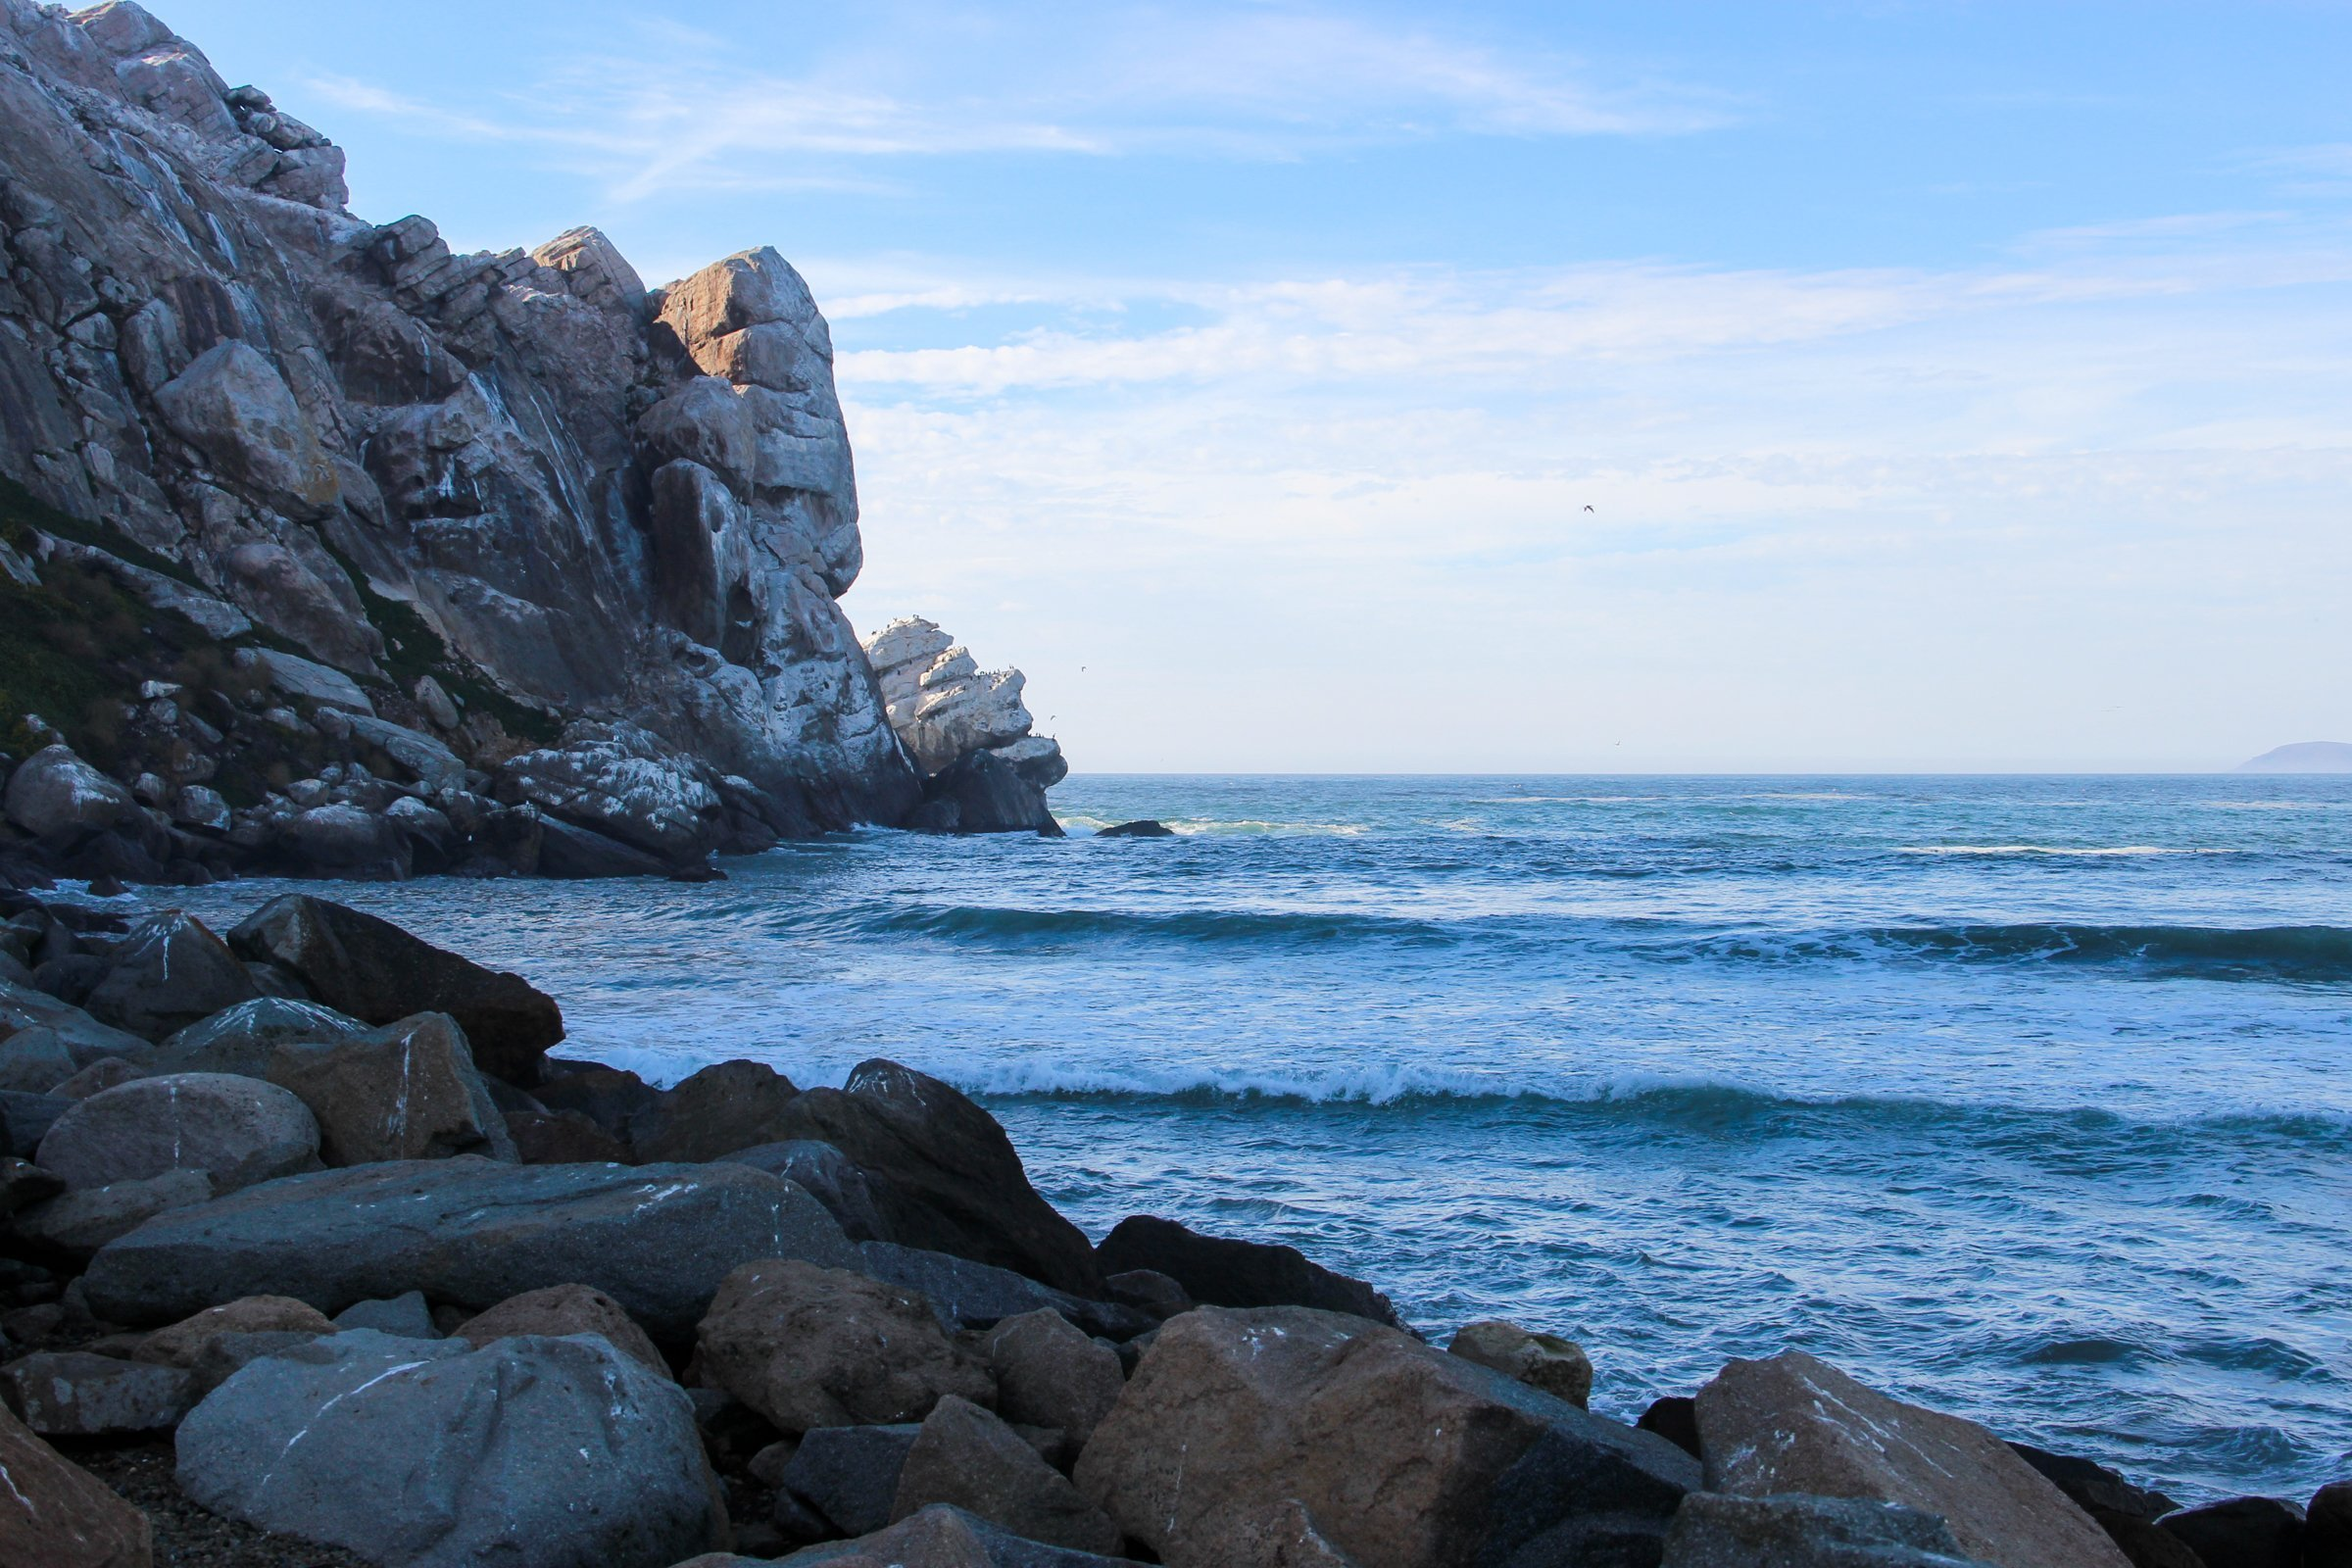 Rocky Cliff On Water